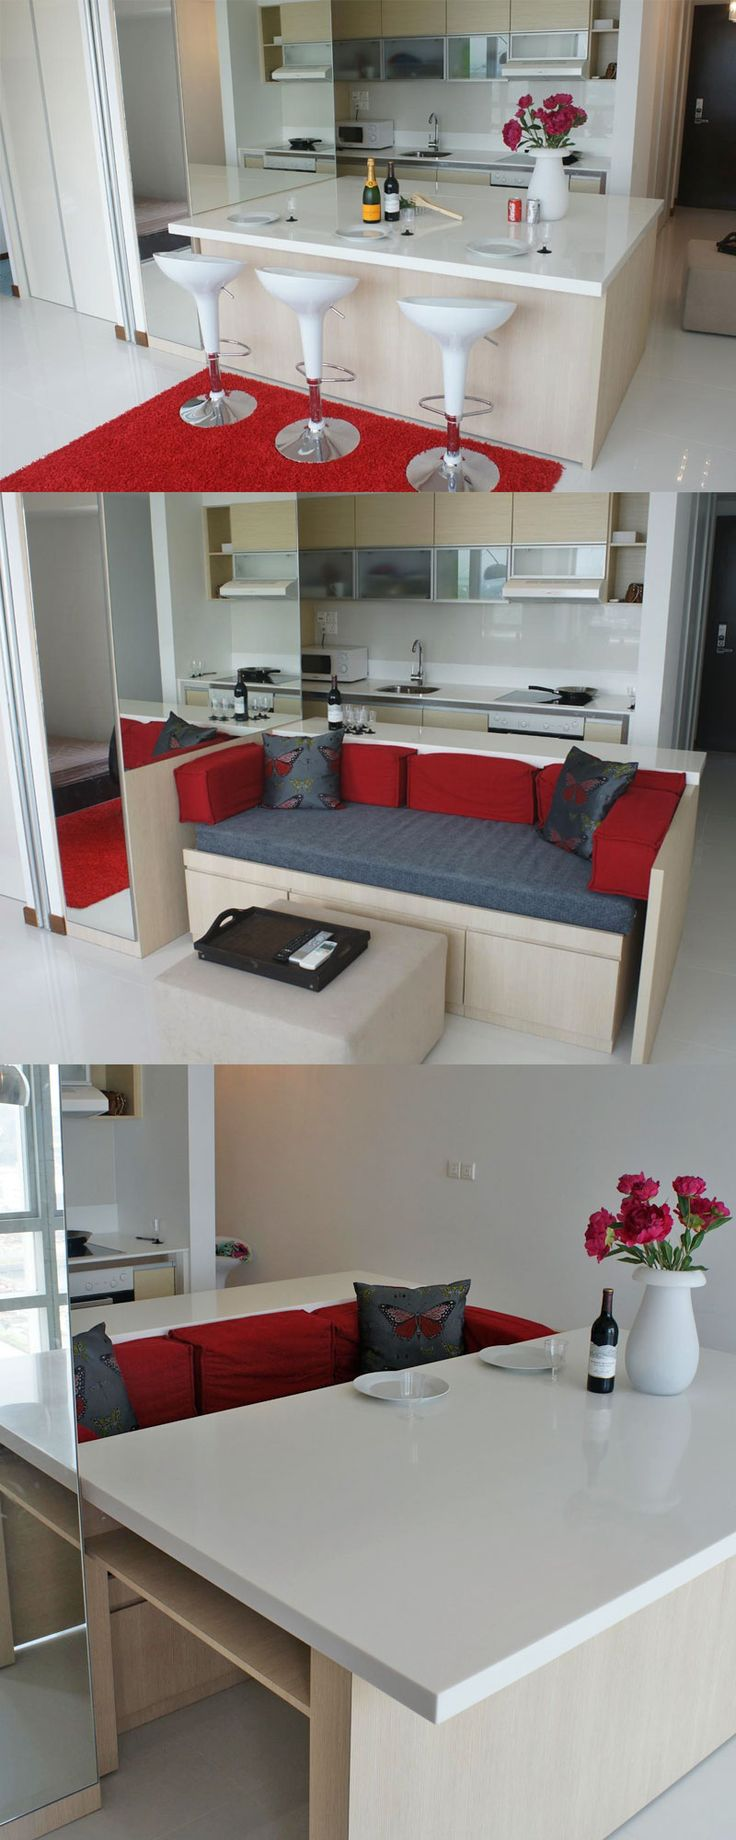 59 best ideas for the house images on pinterest extendable